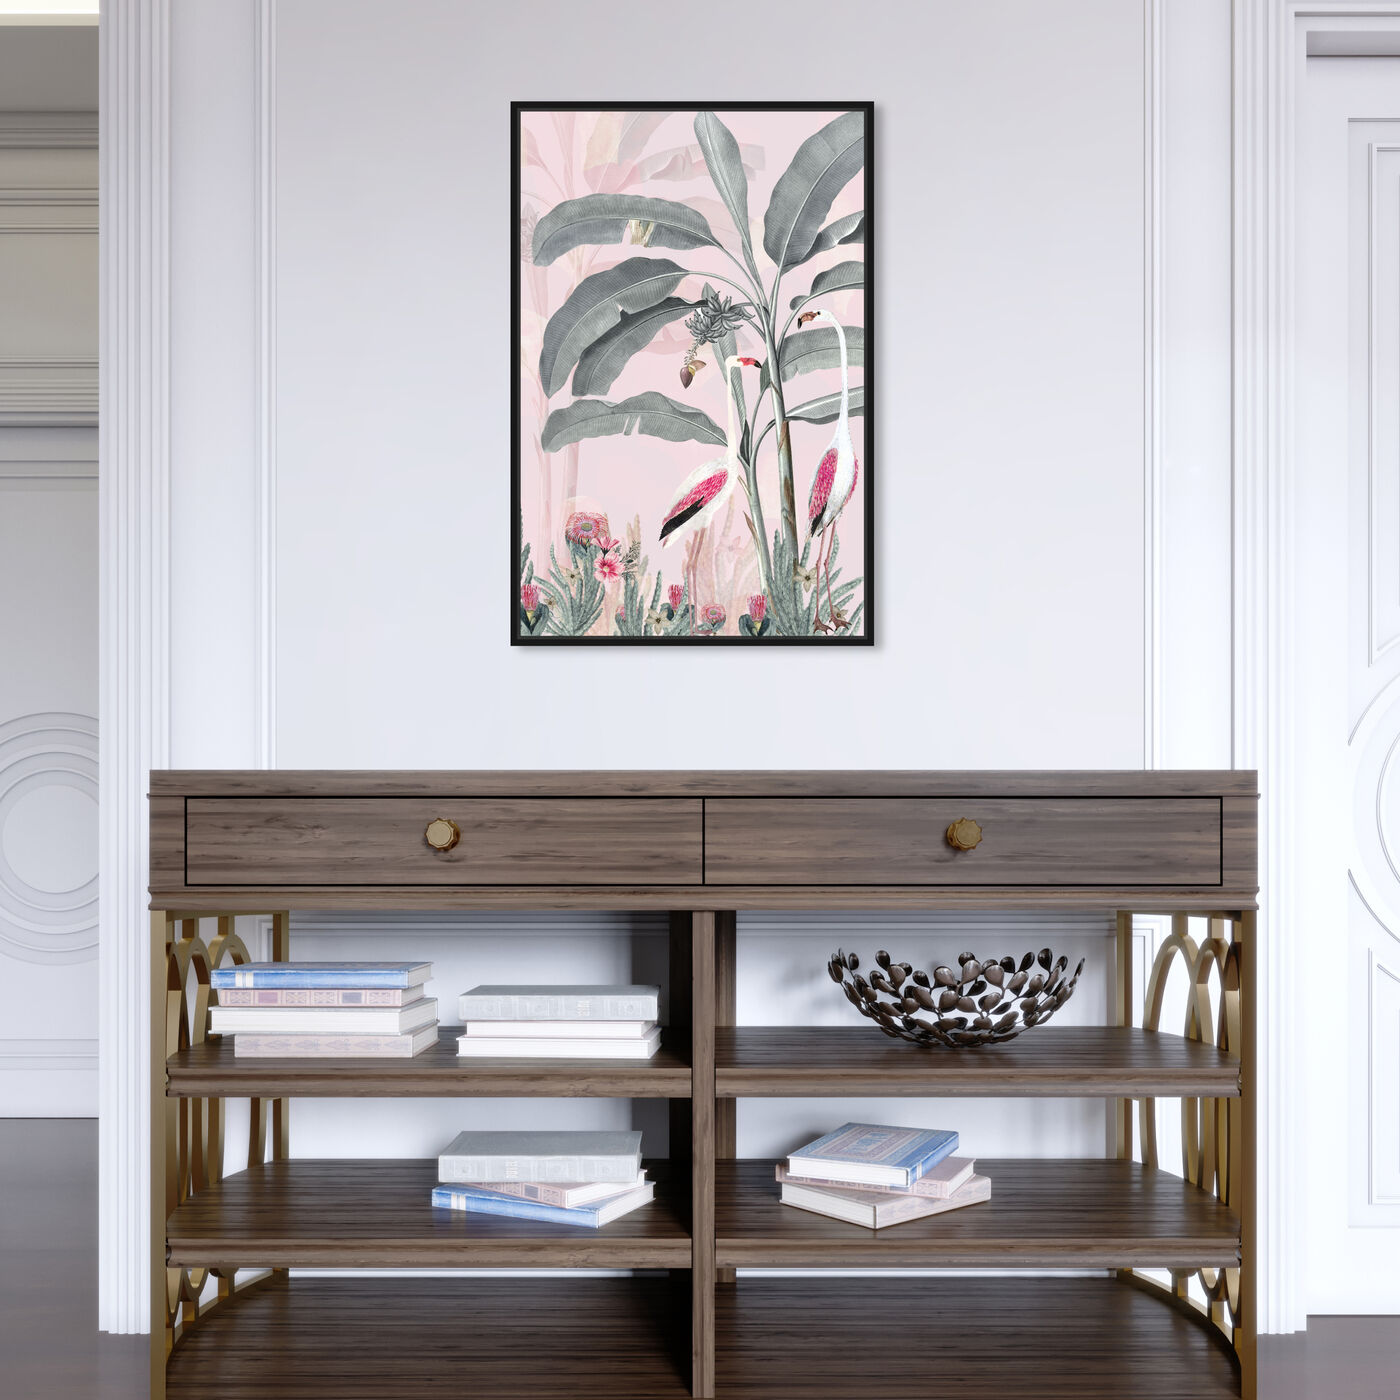 Hanging view of Flamingo Pink featuring animals and birds art.